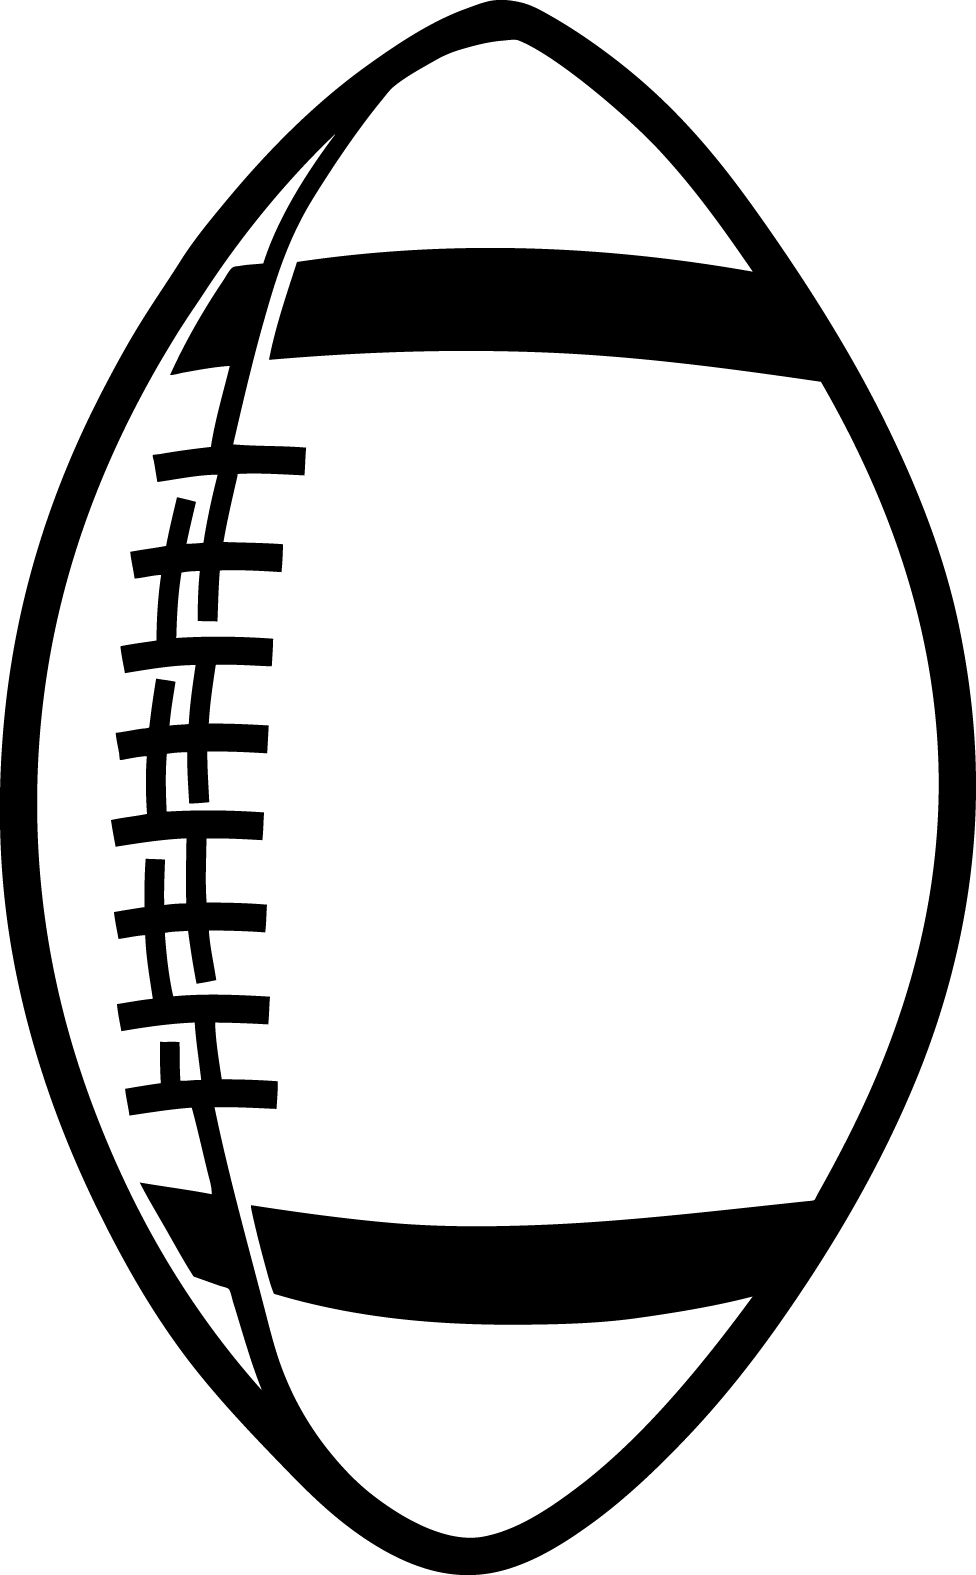 Football outline clipart black and white svg freeuse download Dragonfly Outline Clipart | Clipart Panda - Free Clipart Images ... svg freeuse download